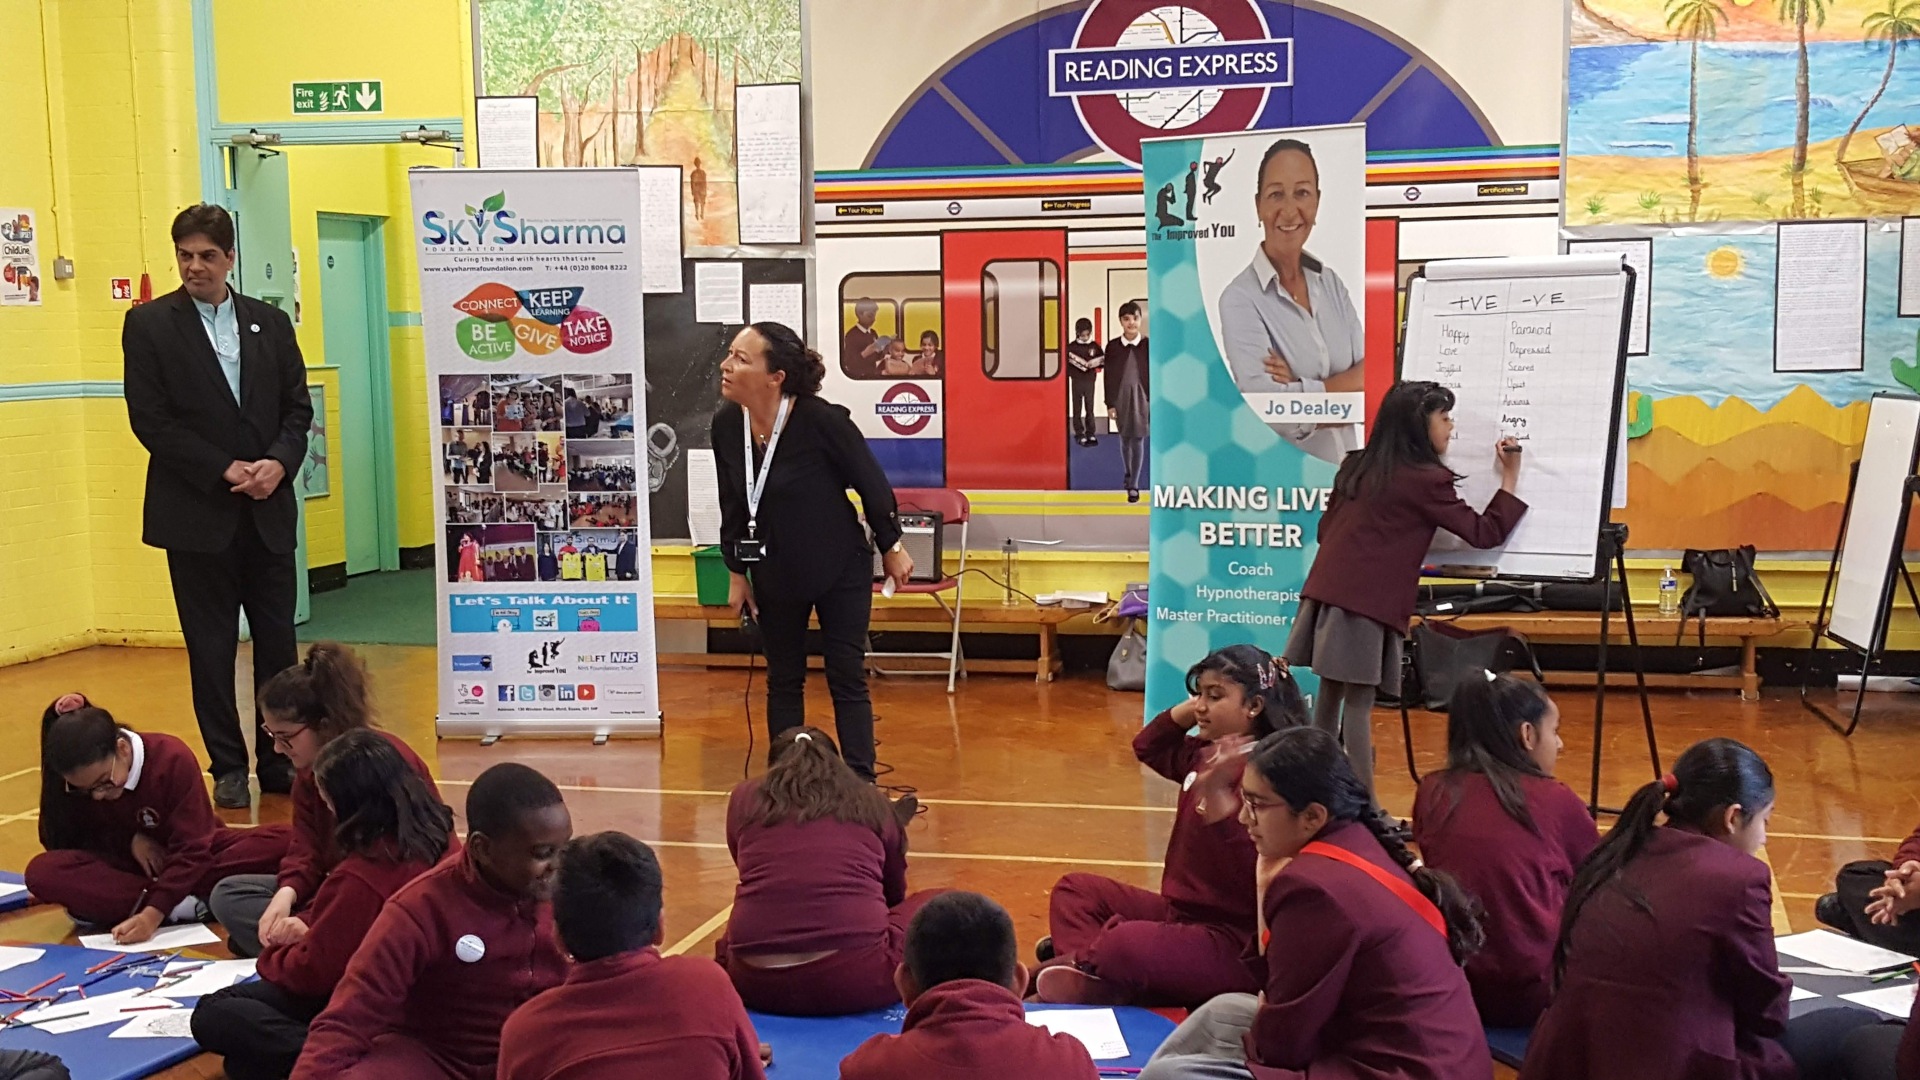 assets/uploader/images/SSF held an interactive workshop at Uphall primary school